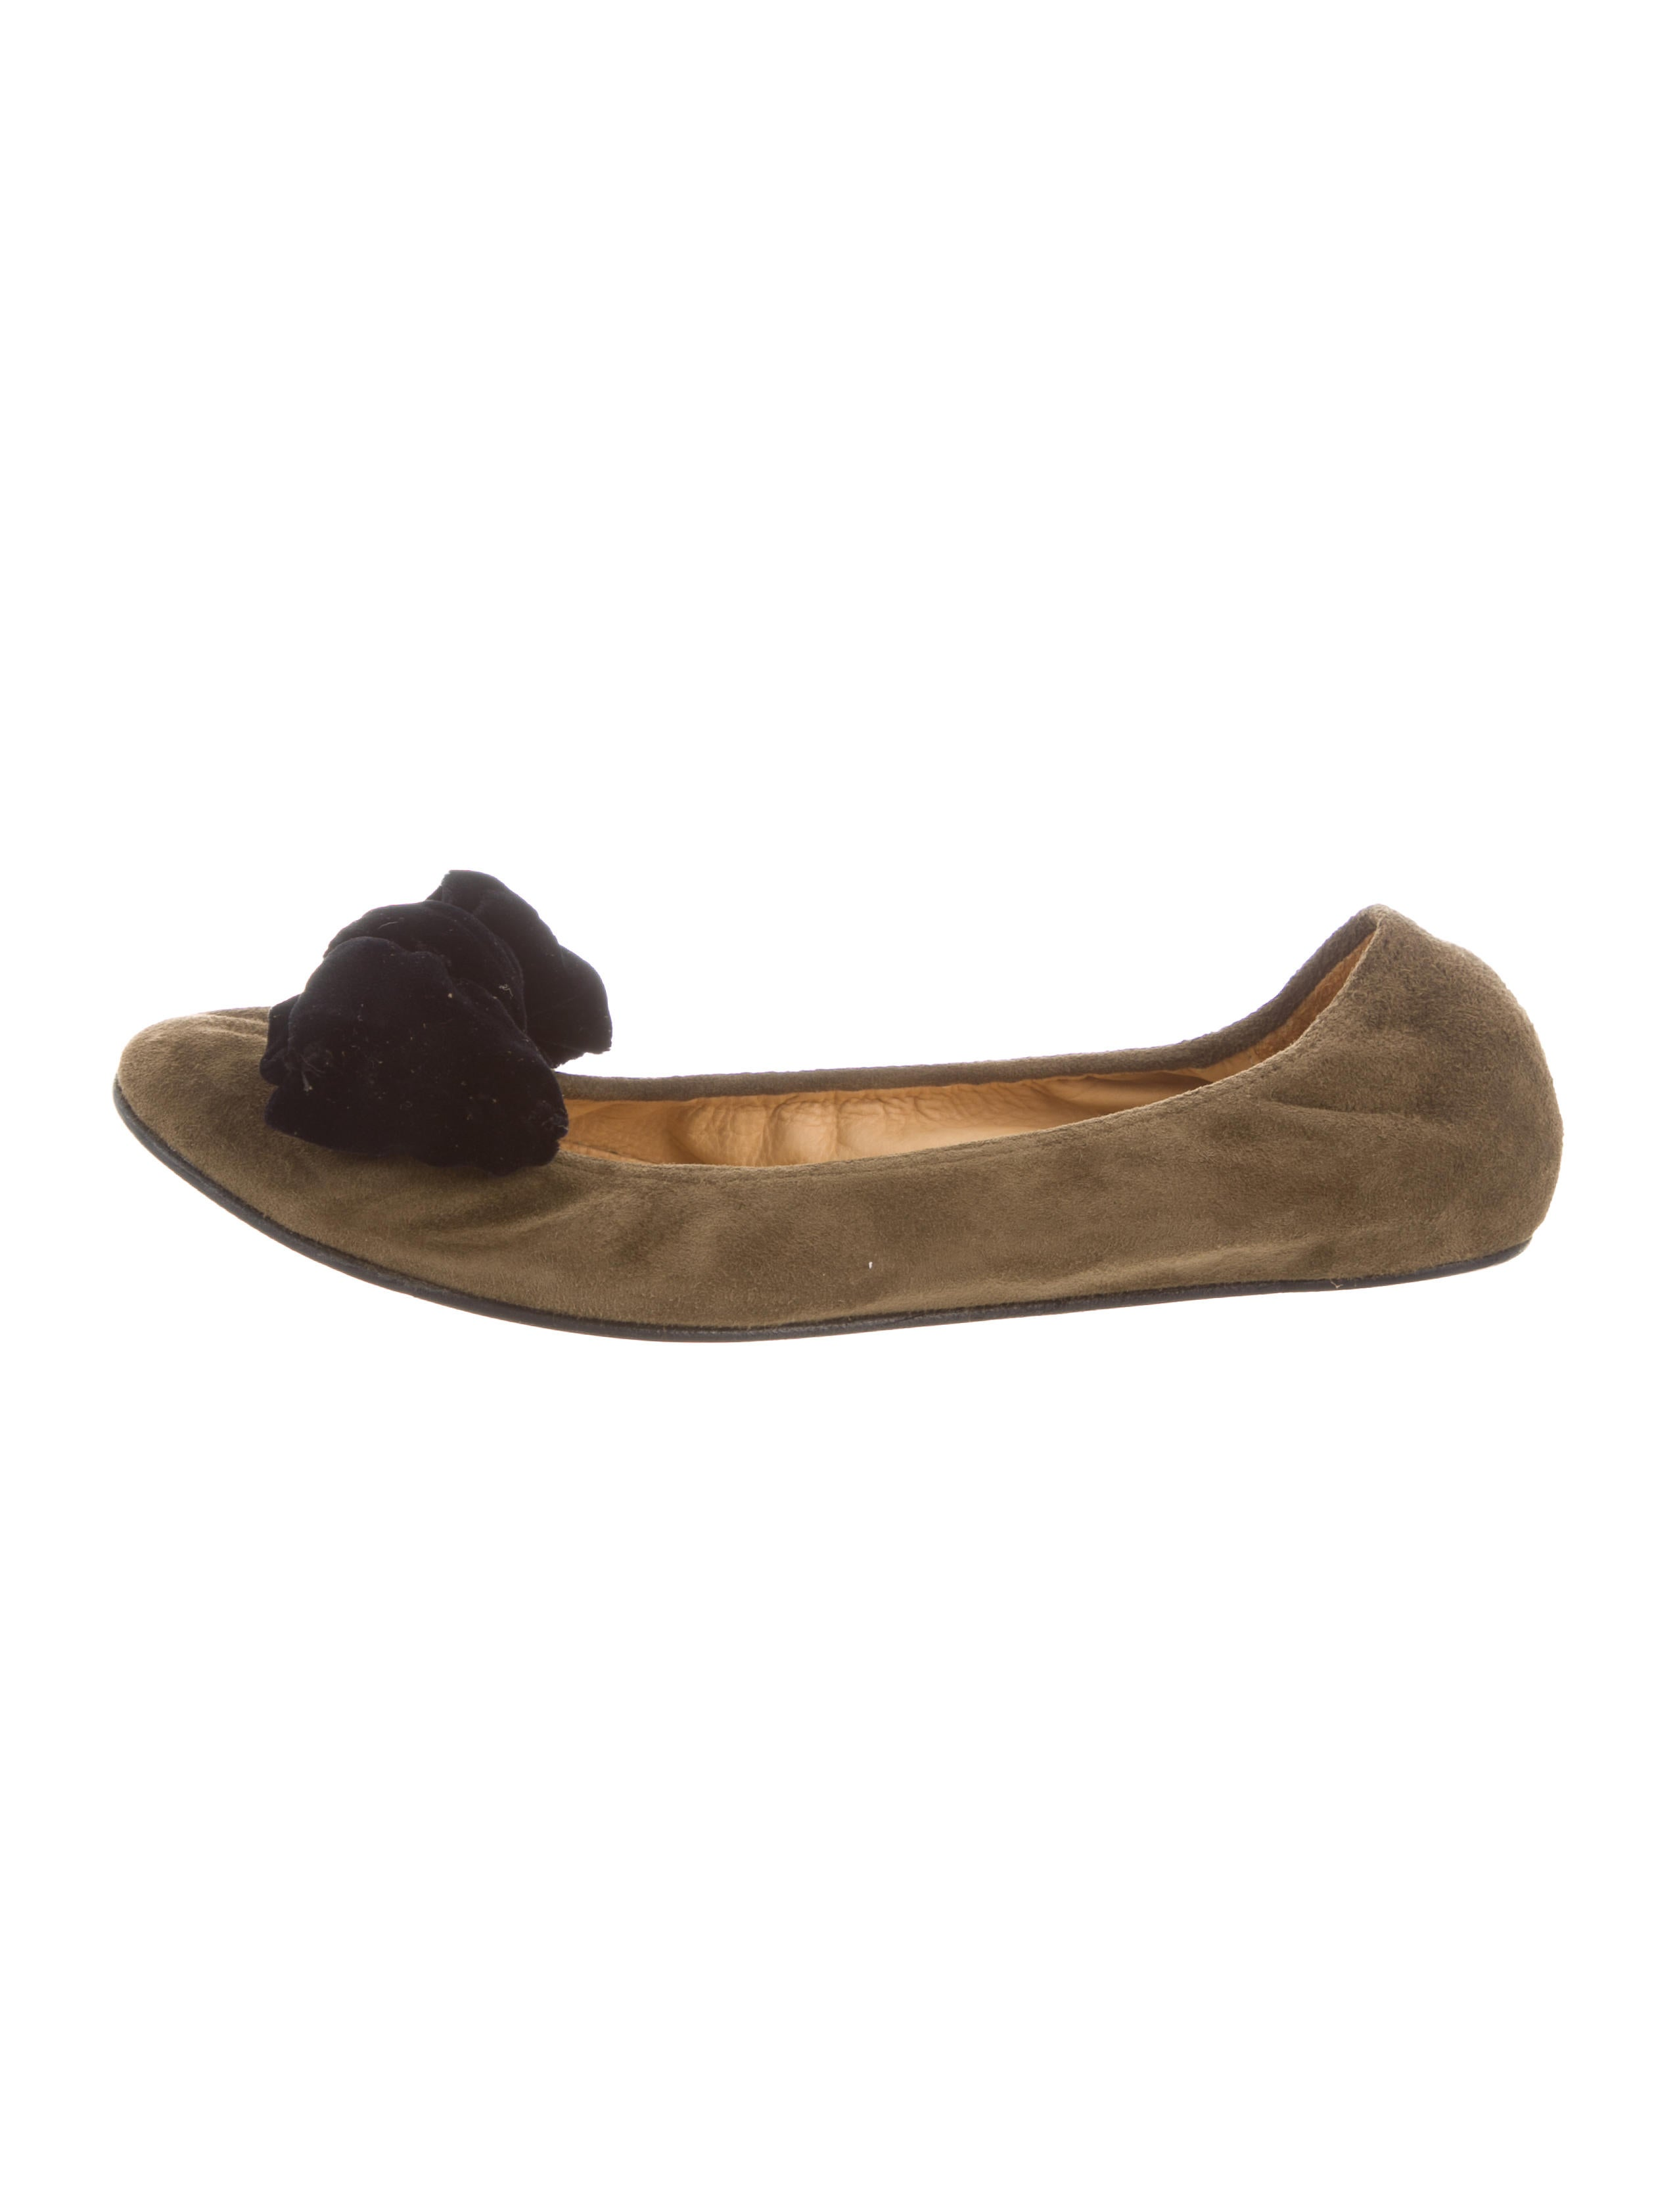 Lanvin Bow-accented Ballet Flats hot sale outlet store locations cheap cost limited edition for sale clearance online official site PM9f8obtZ